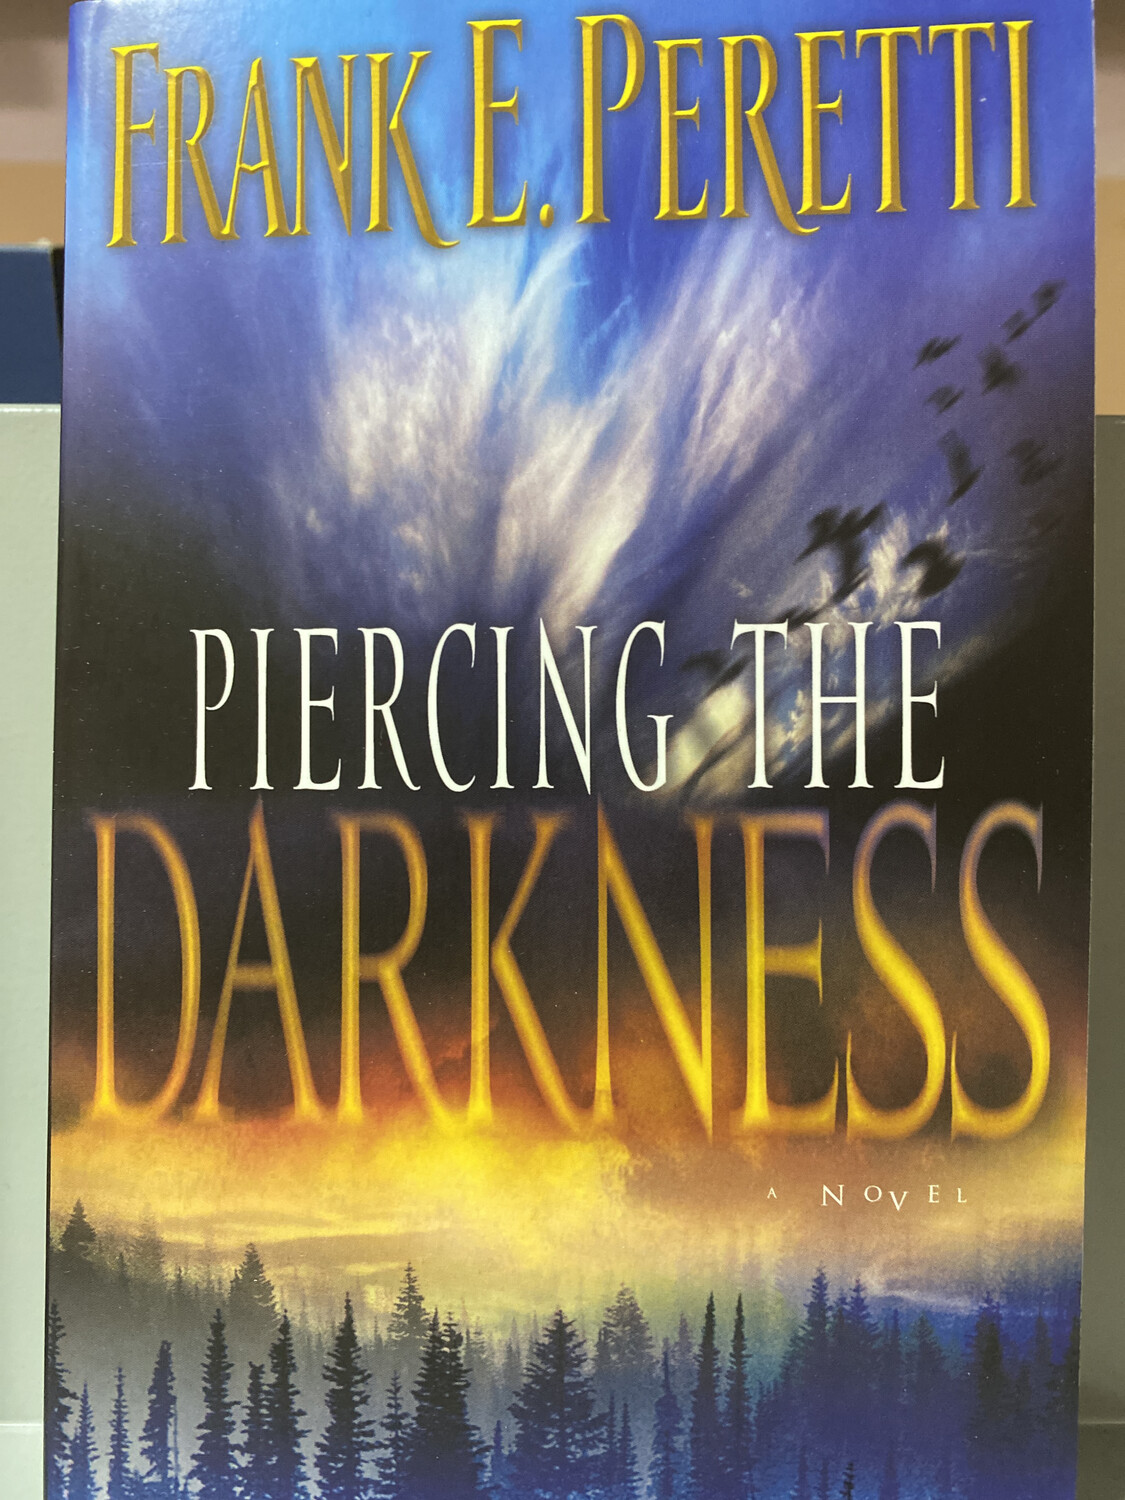 PERETTI, Piercing The Darkness